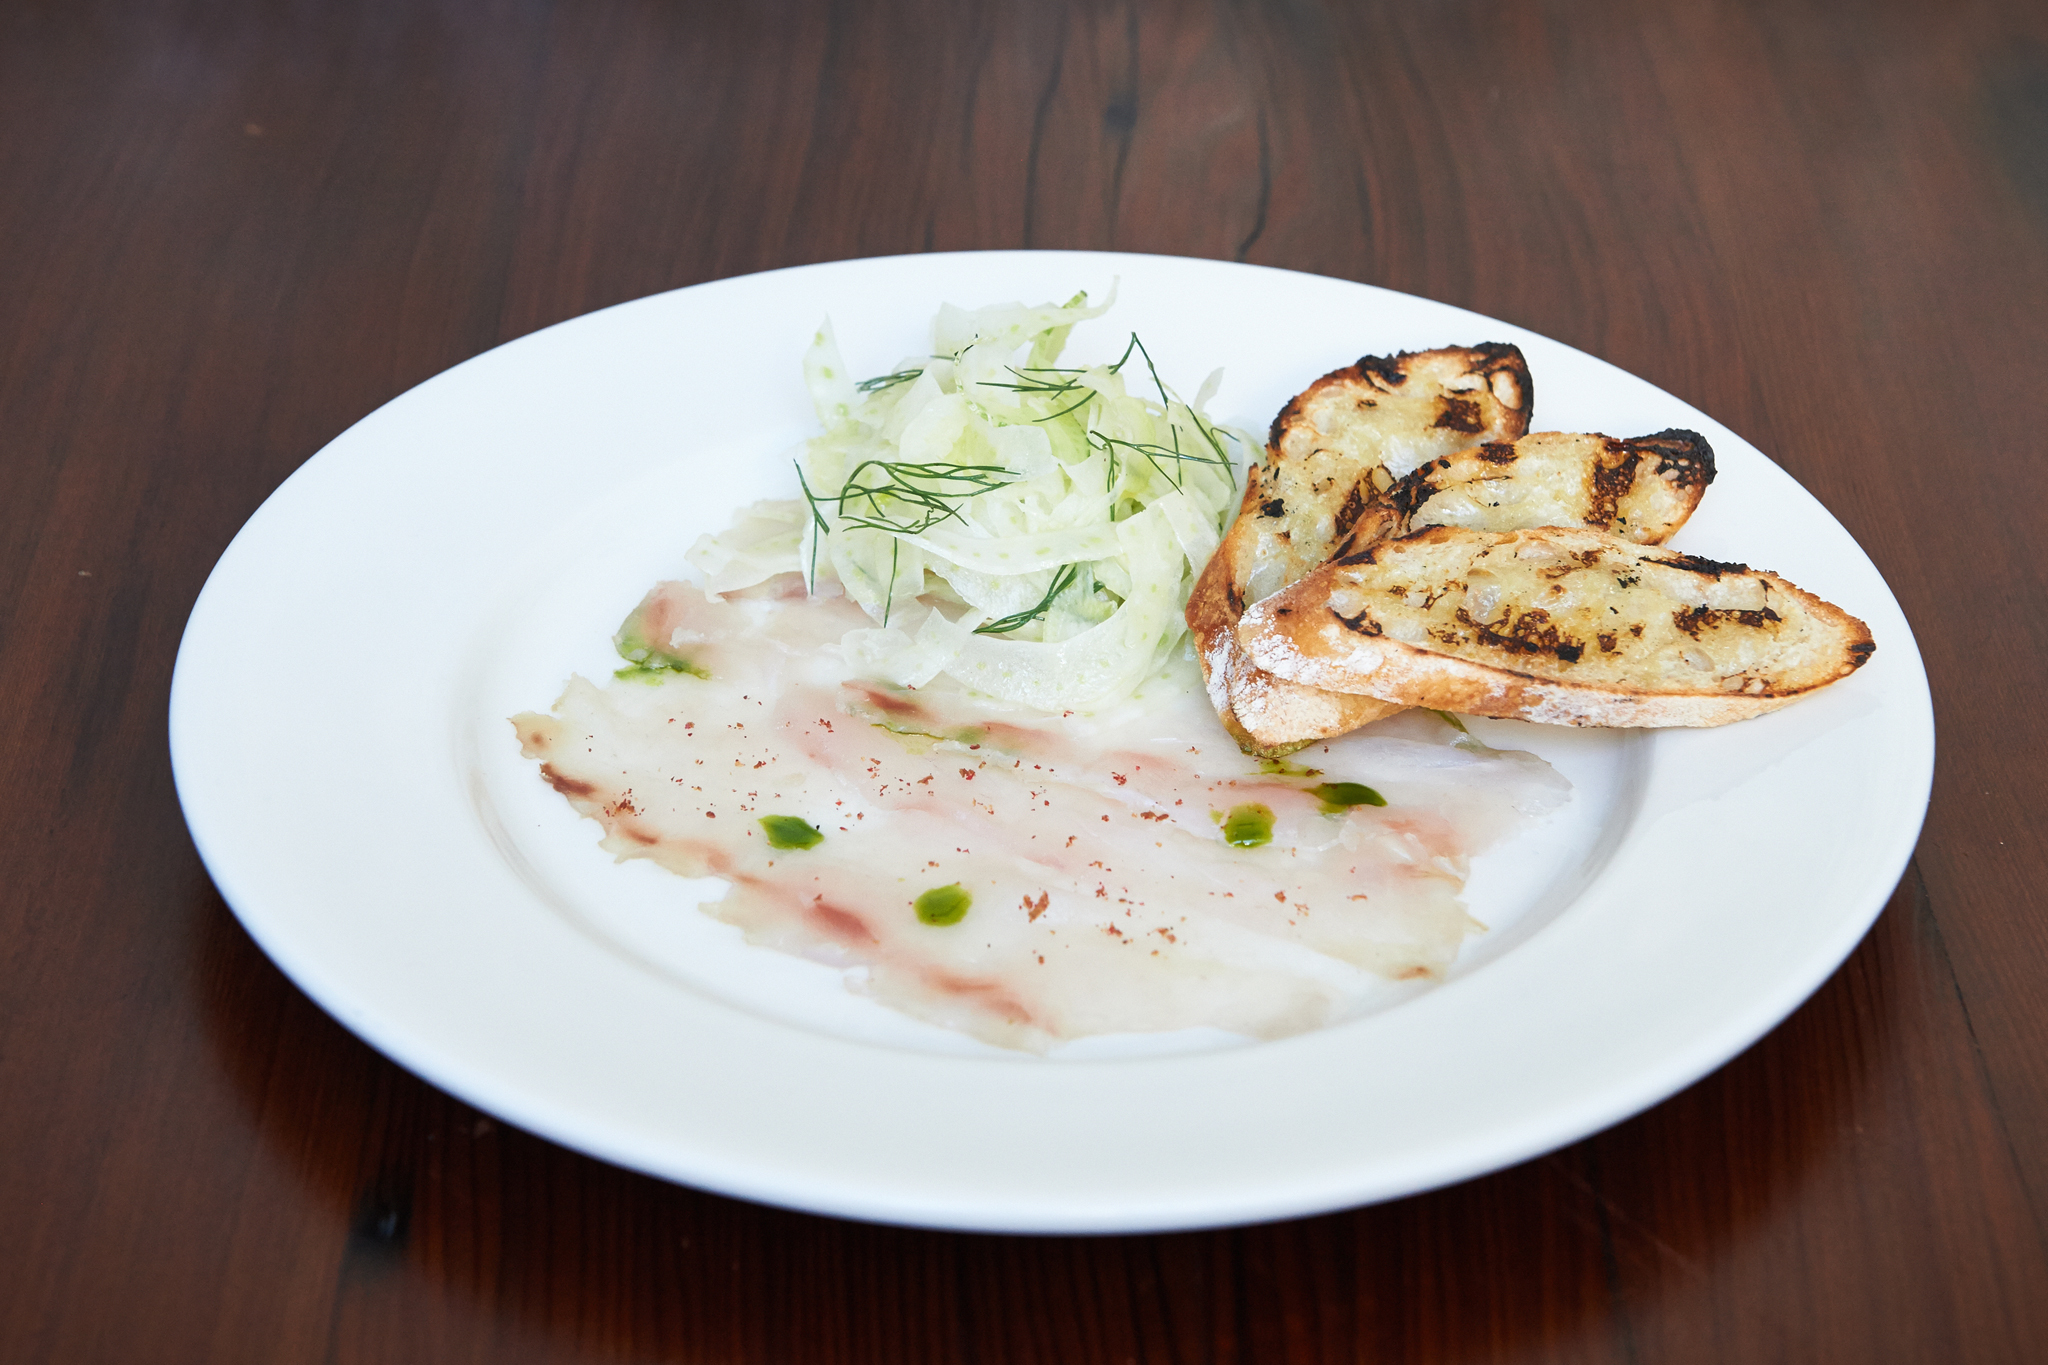 Grappa-cured striped bass at Runner & Stone